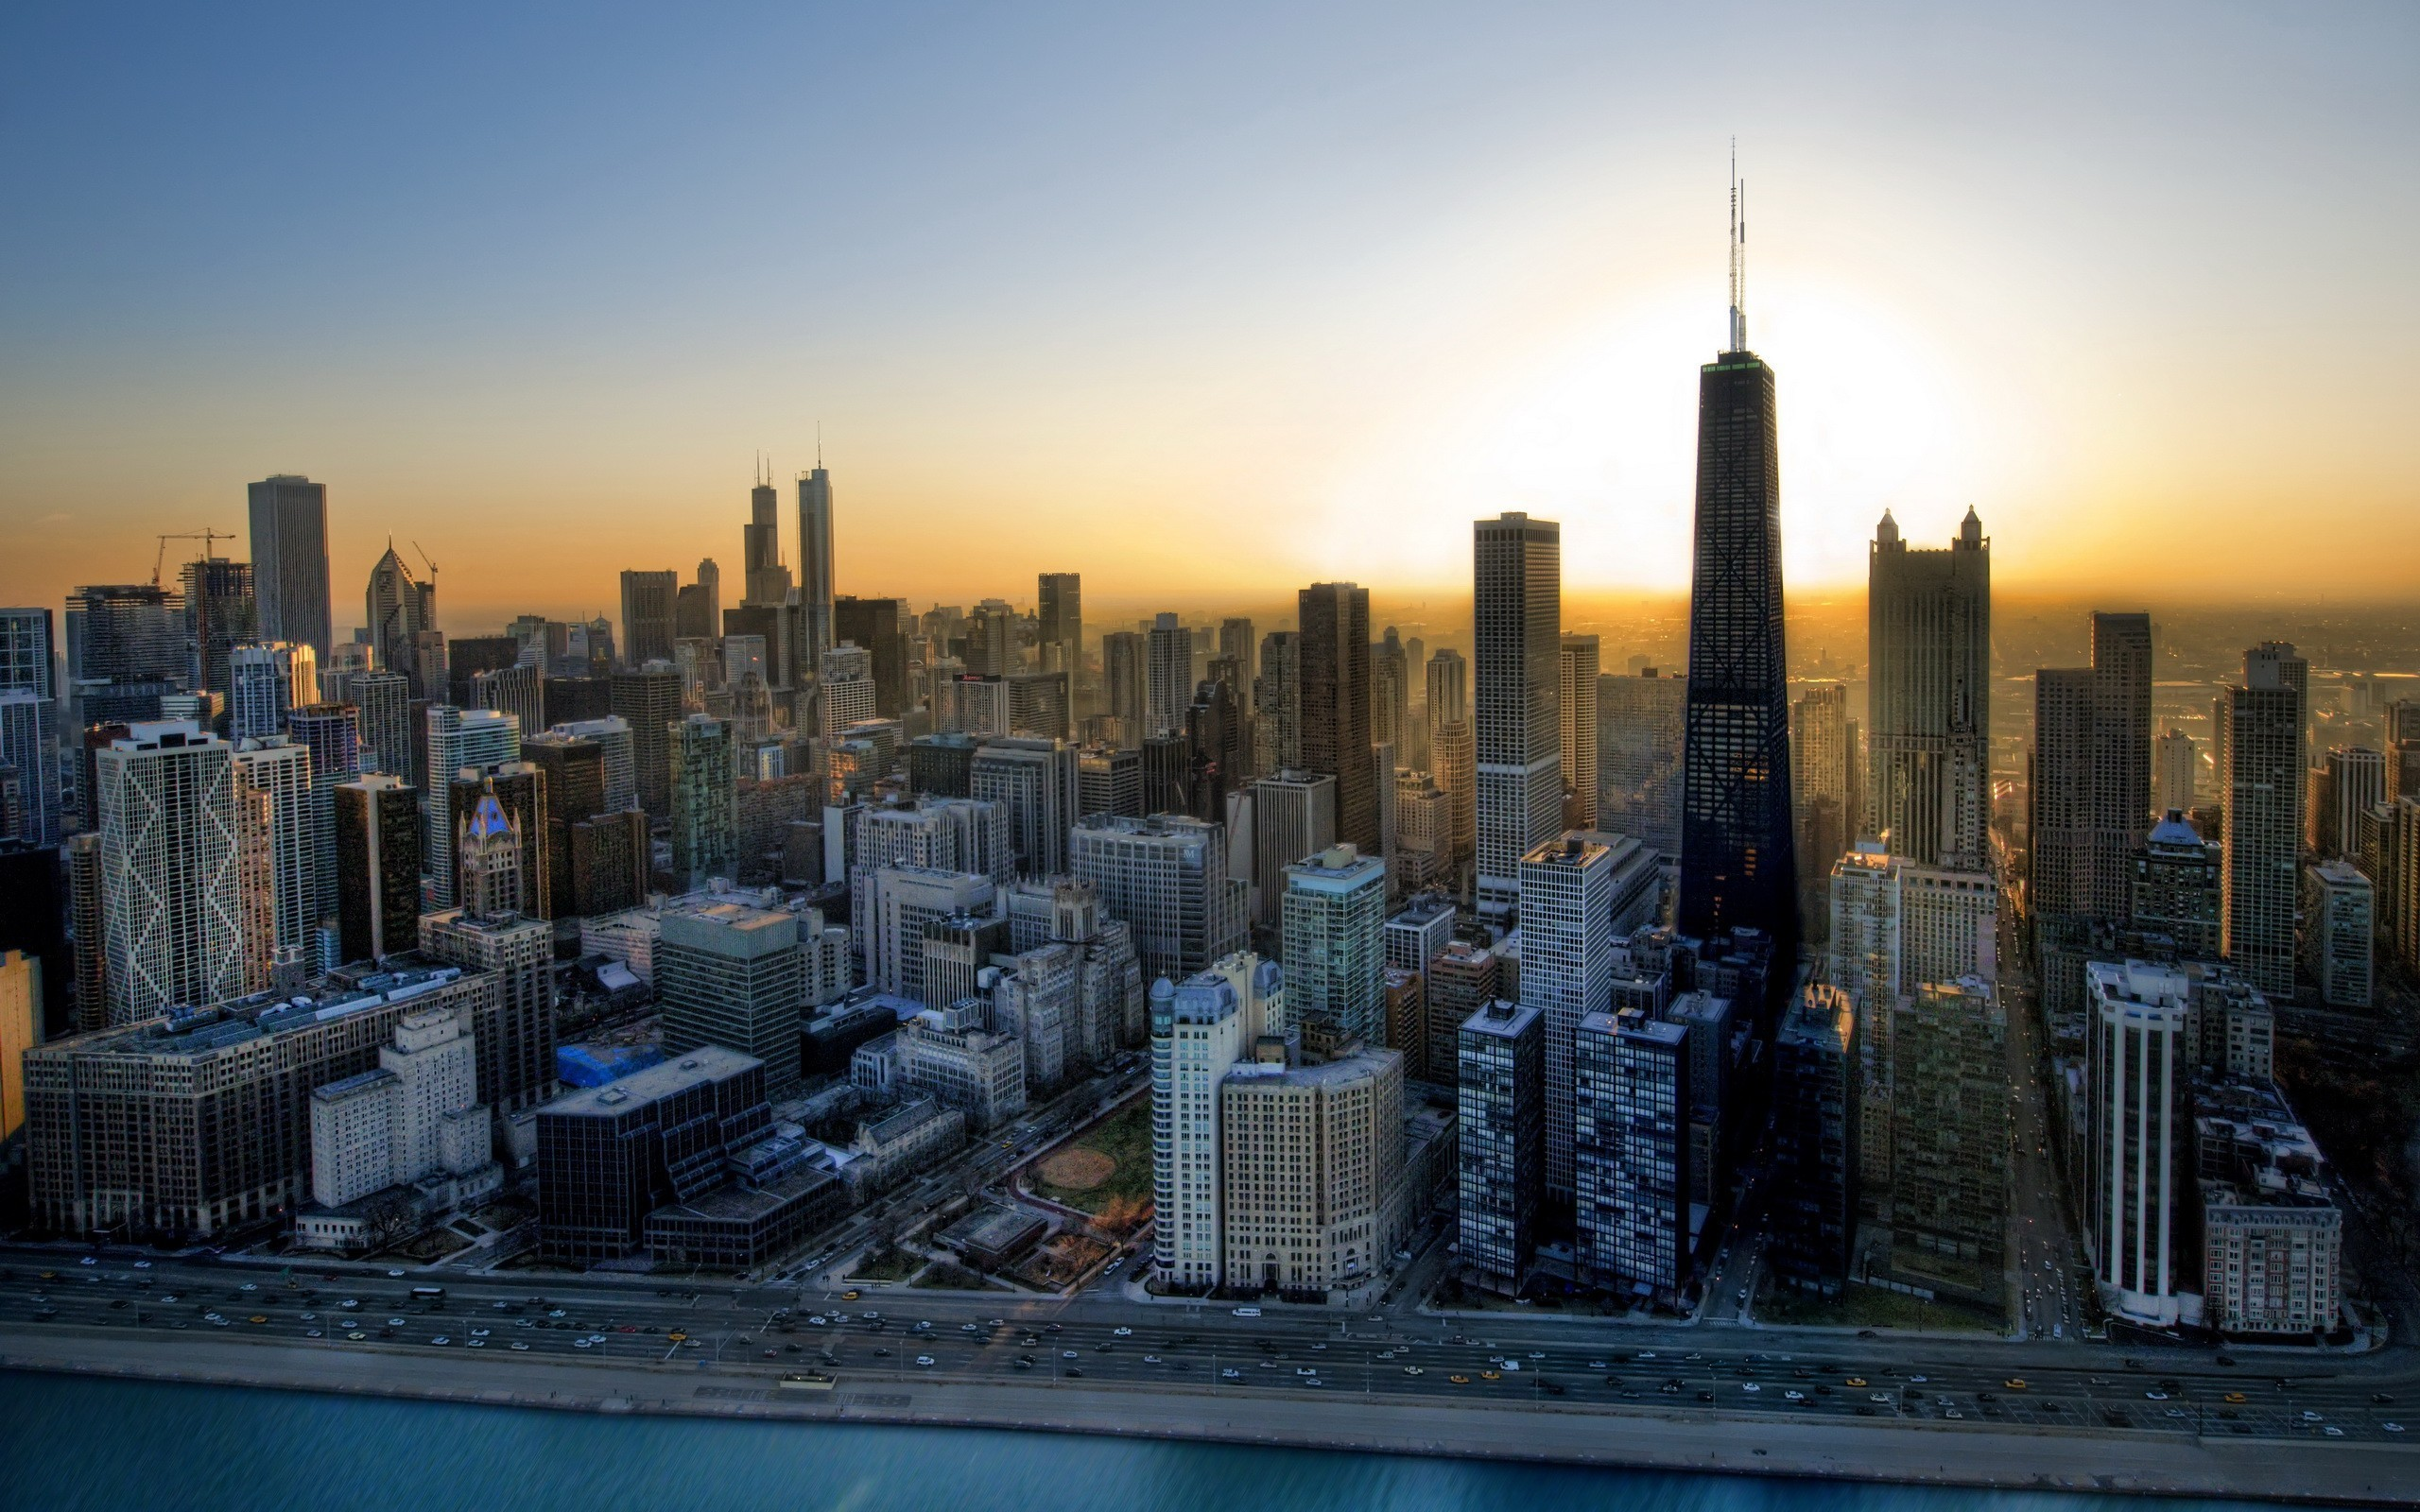 2560x1600 chicago skyline hd wallpaper 1920x1080 - photo #8. Illinois Wants To Ban  Location Tracking Without Consent